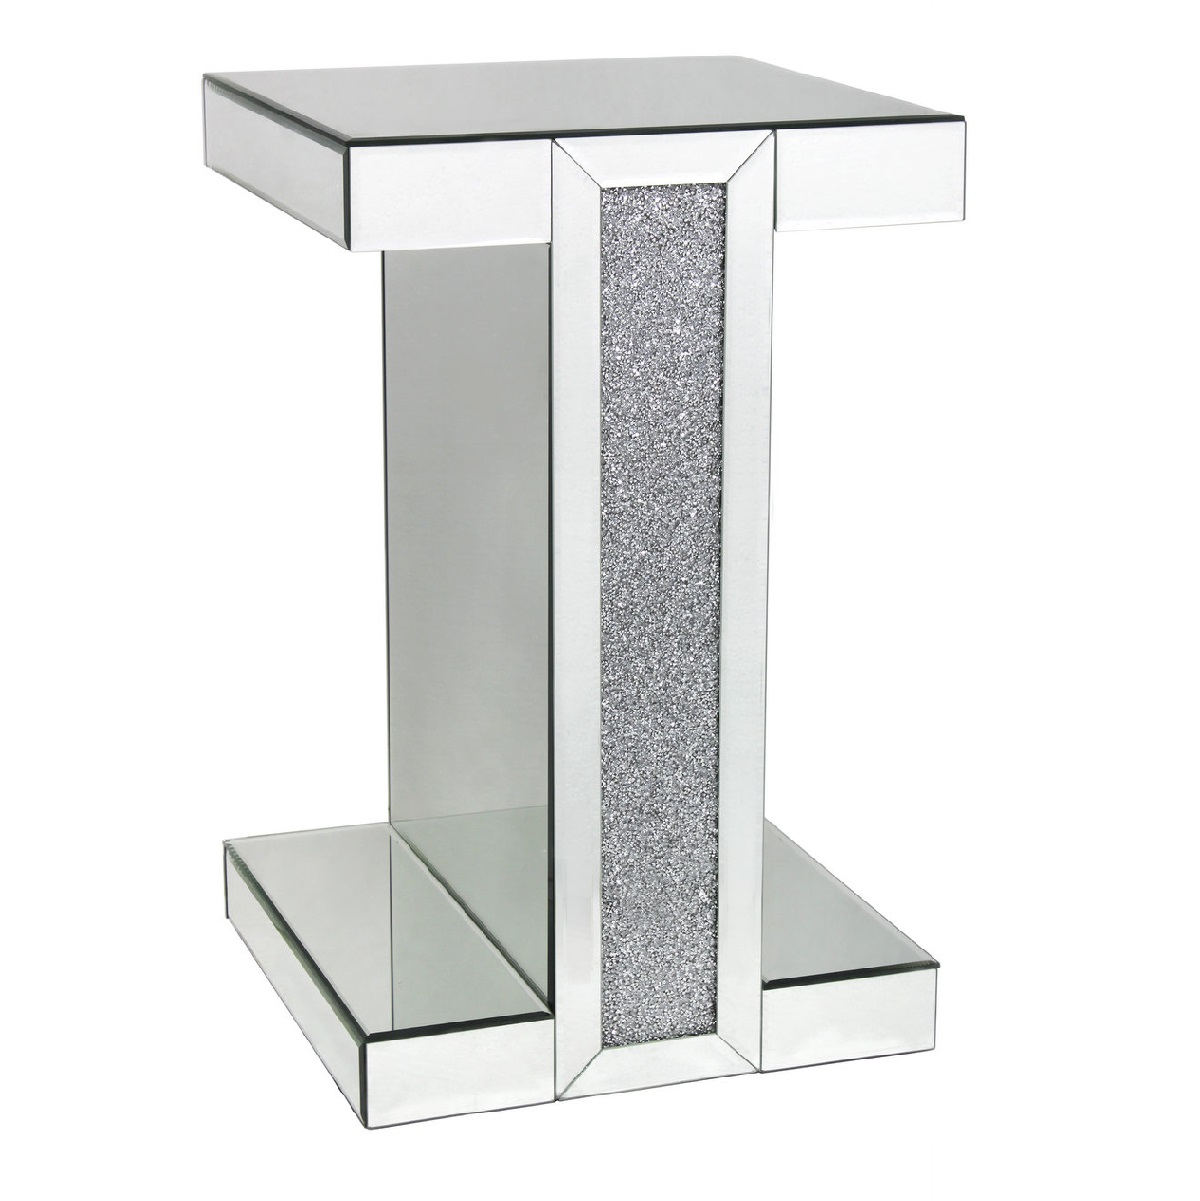 mirrored side table. Tuscany-mirror-end-table-with-swarovski-crystals Mirrored Side Table